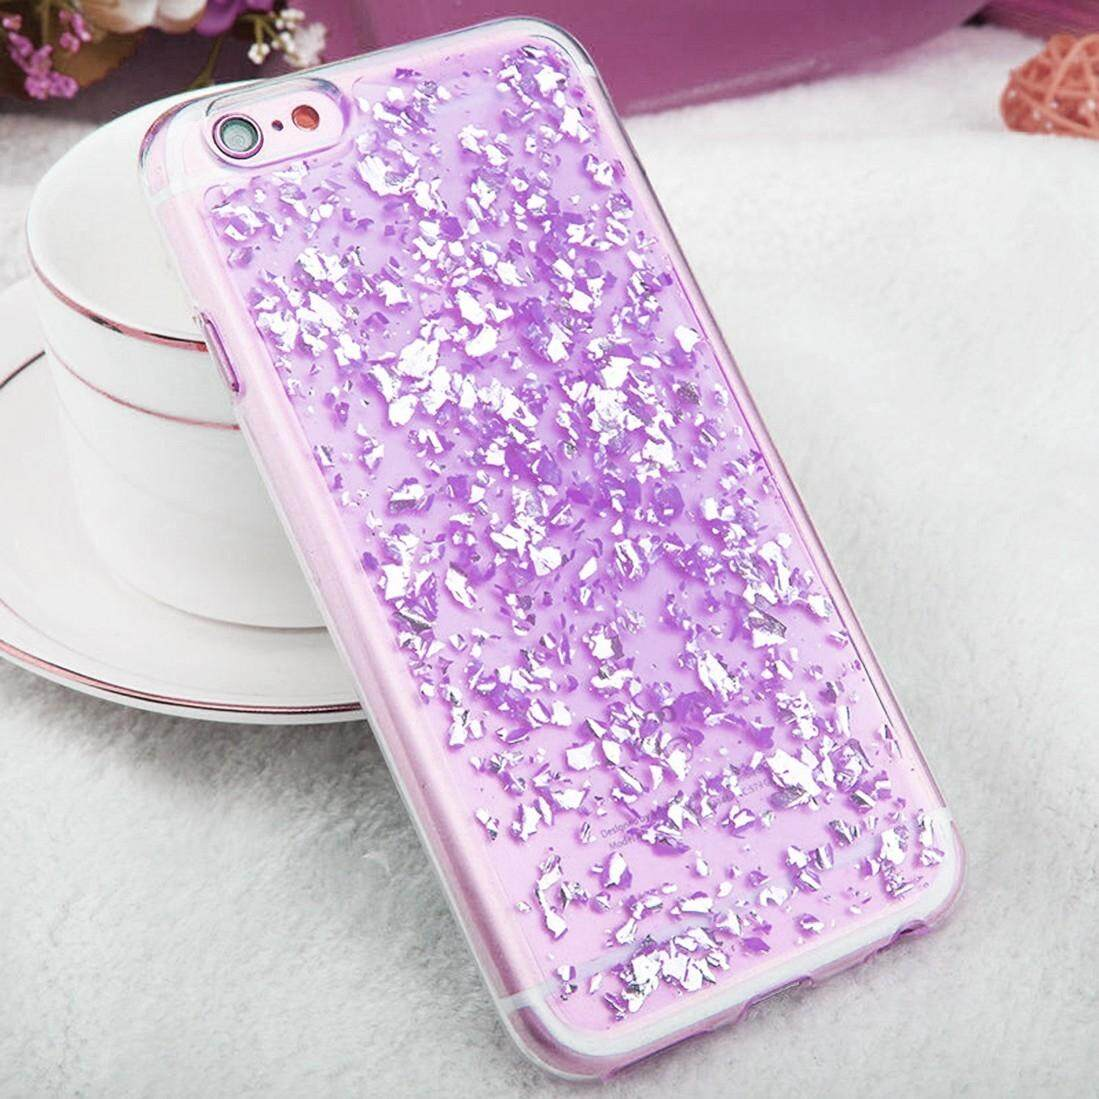 For iPhone 6 & 6s Scattered Platinum Pattern TPU Protective Case(Purple) - intl